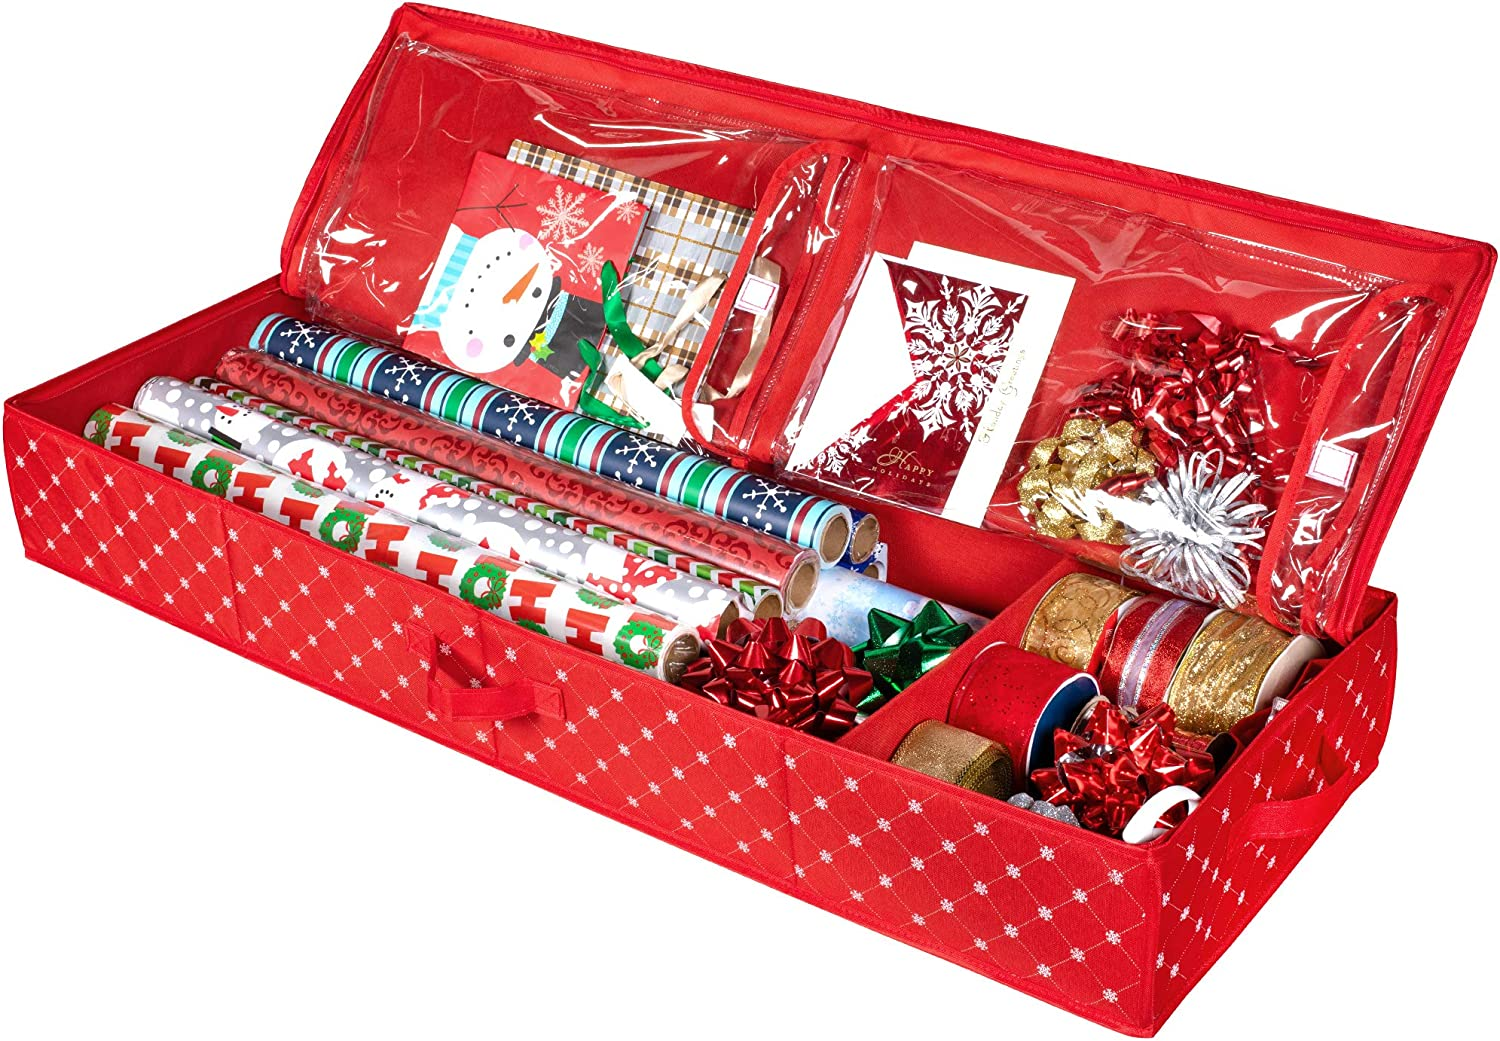 Christmas Storage Organizer - Wrapping Paper Storage and Under-Bed Storage Container for Holiday Storage of Gift Bags, Wrapping Paper, Ribbon, and Bows - Durable 600D Material